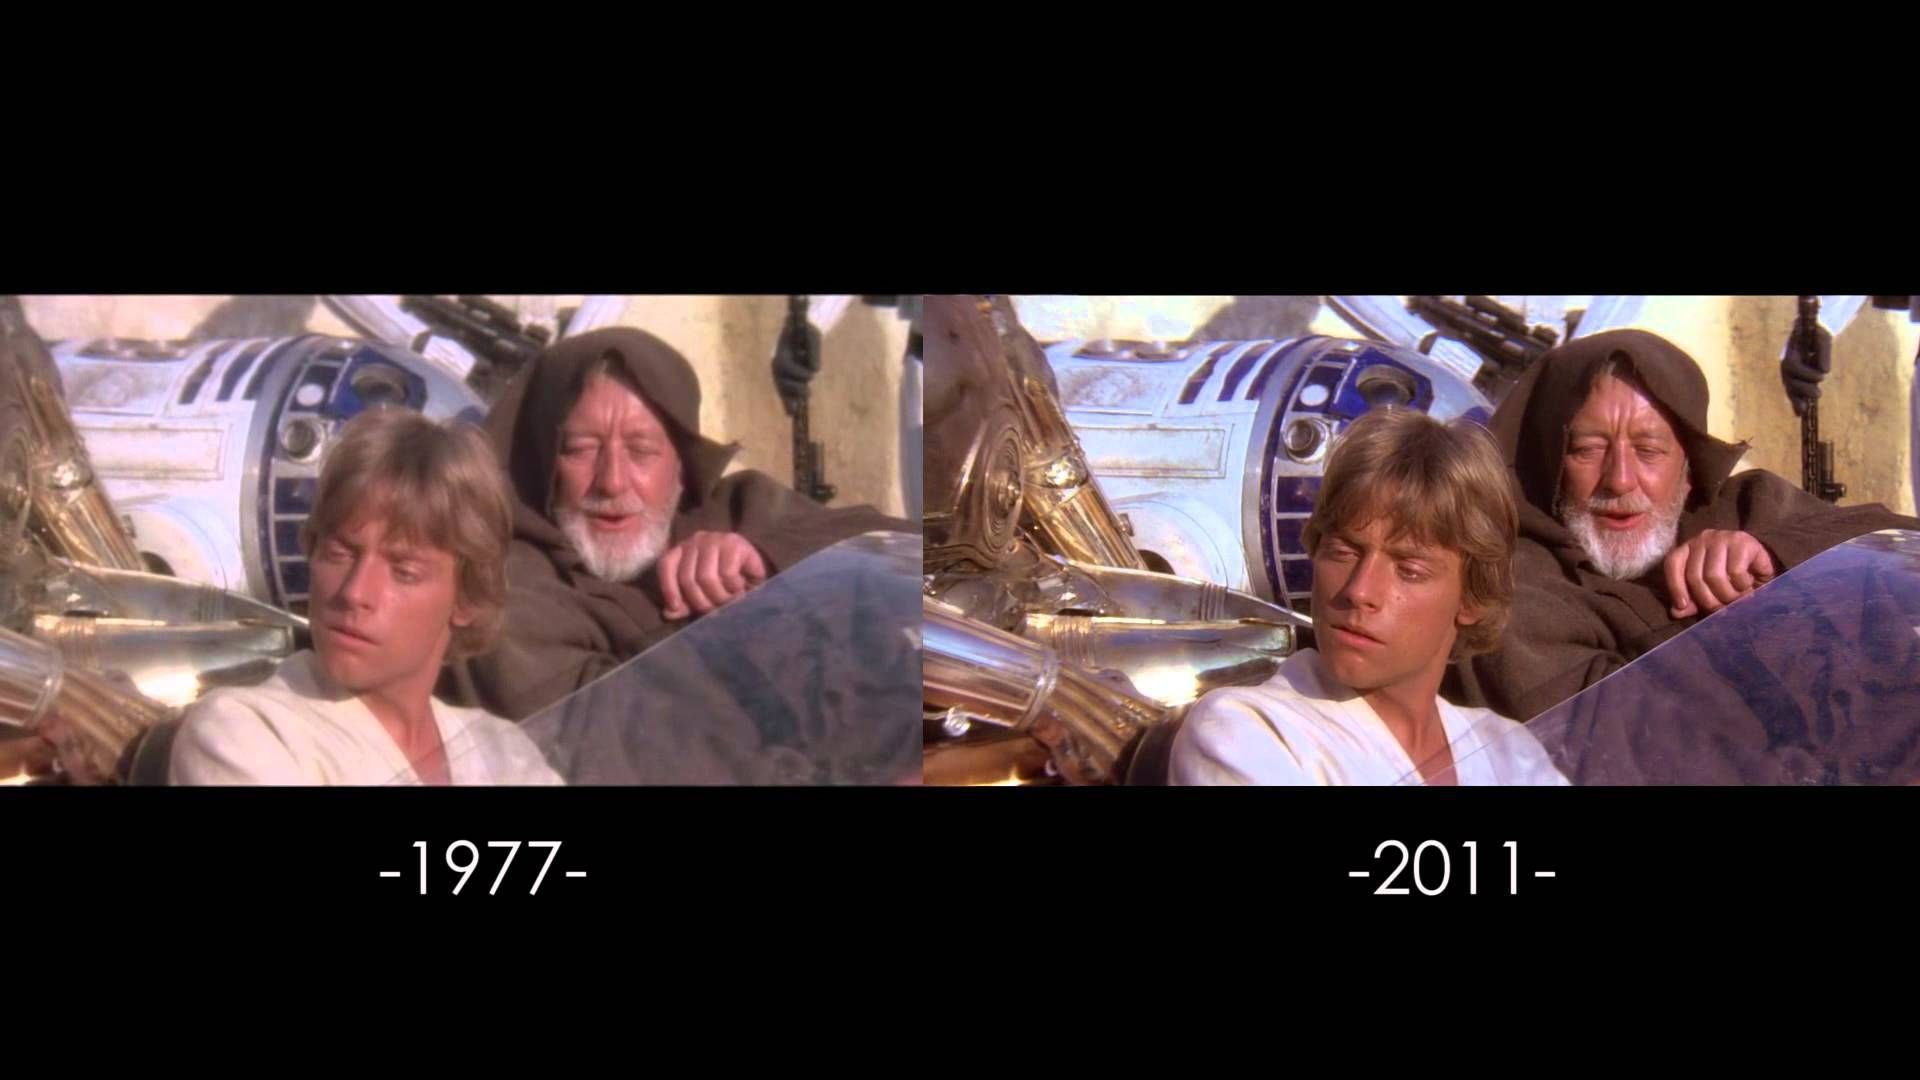 A Video Series Comparing All Of The Changes Ever Made To The Original Star Wars Trilogy Films Star Wars Trilogy Star Wars Artwork Star Wars Episode Iv